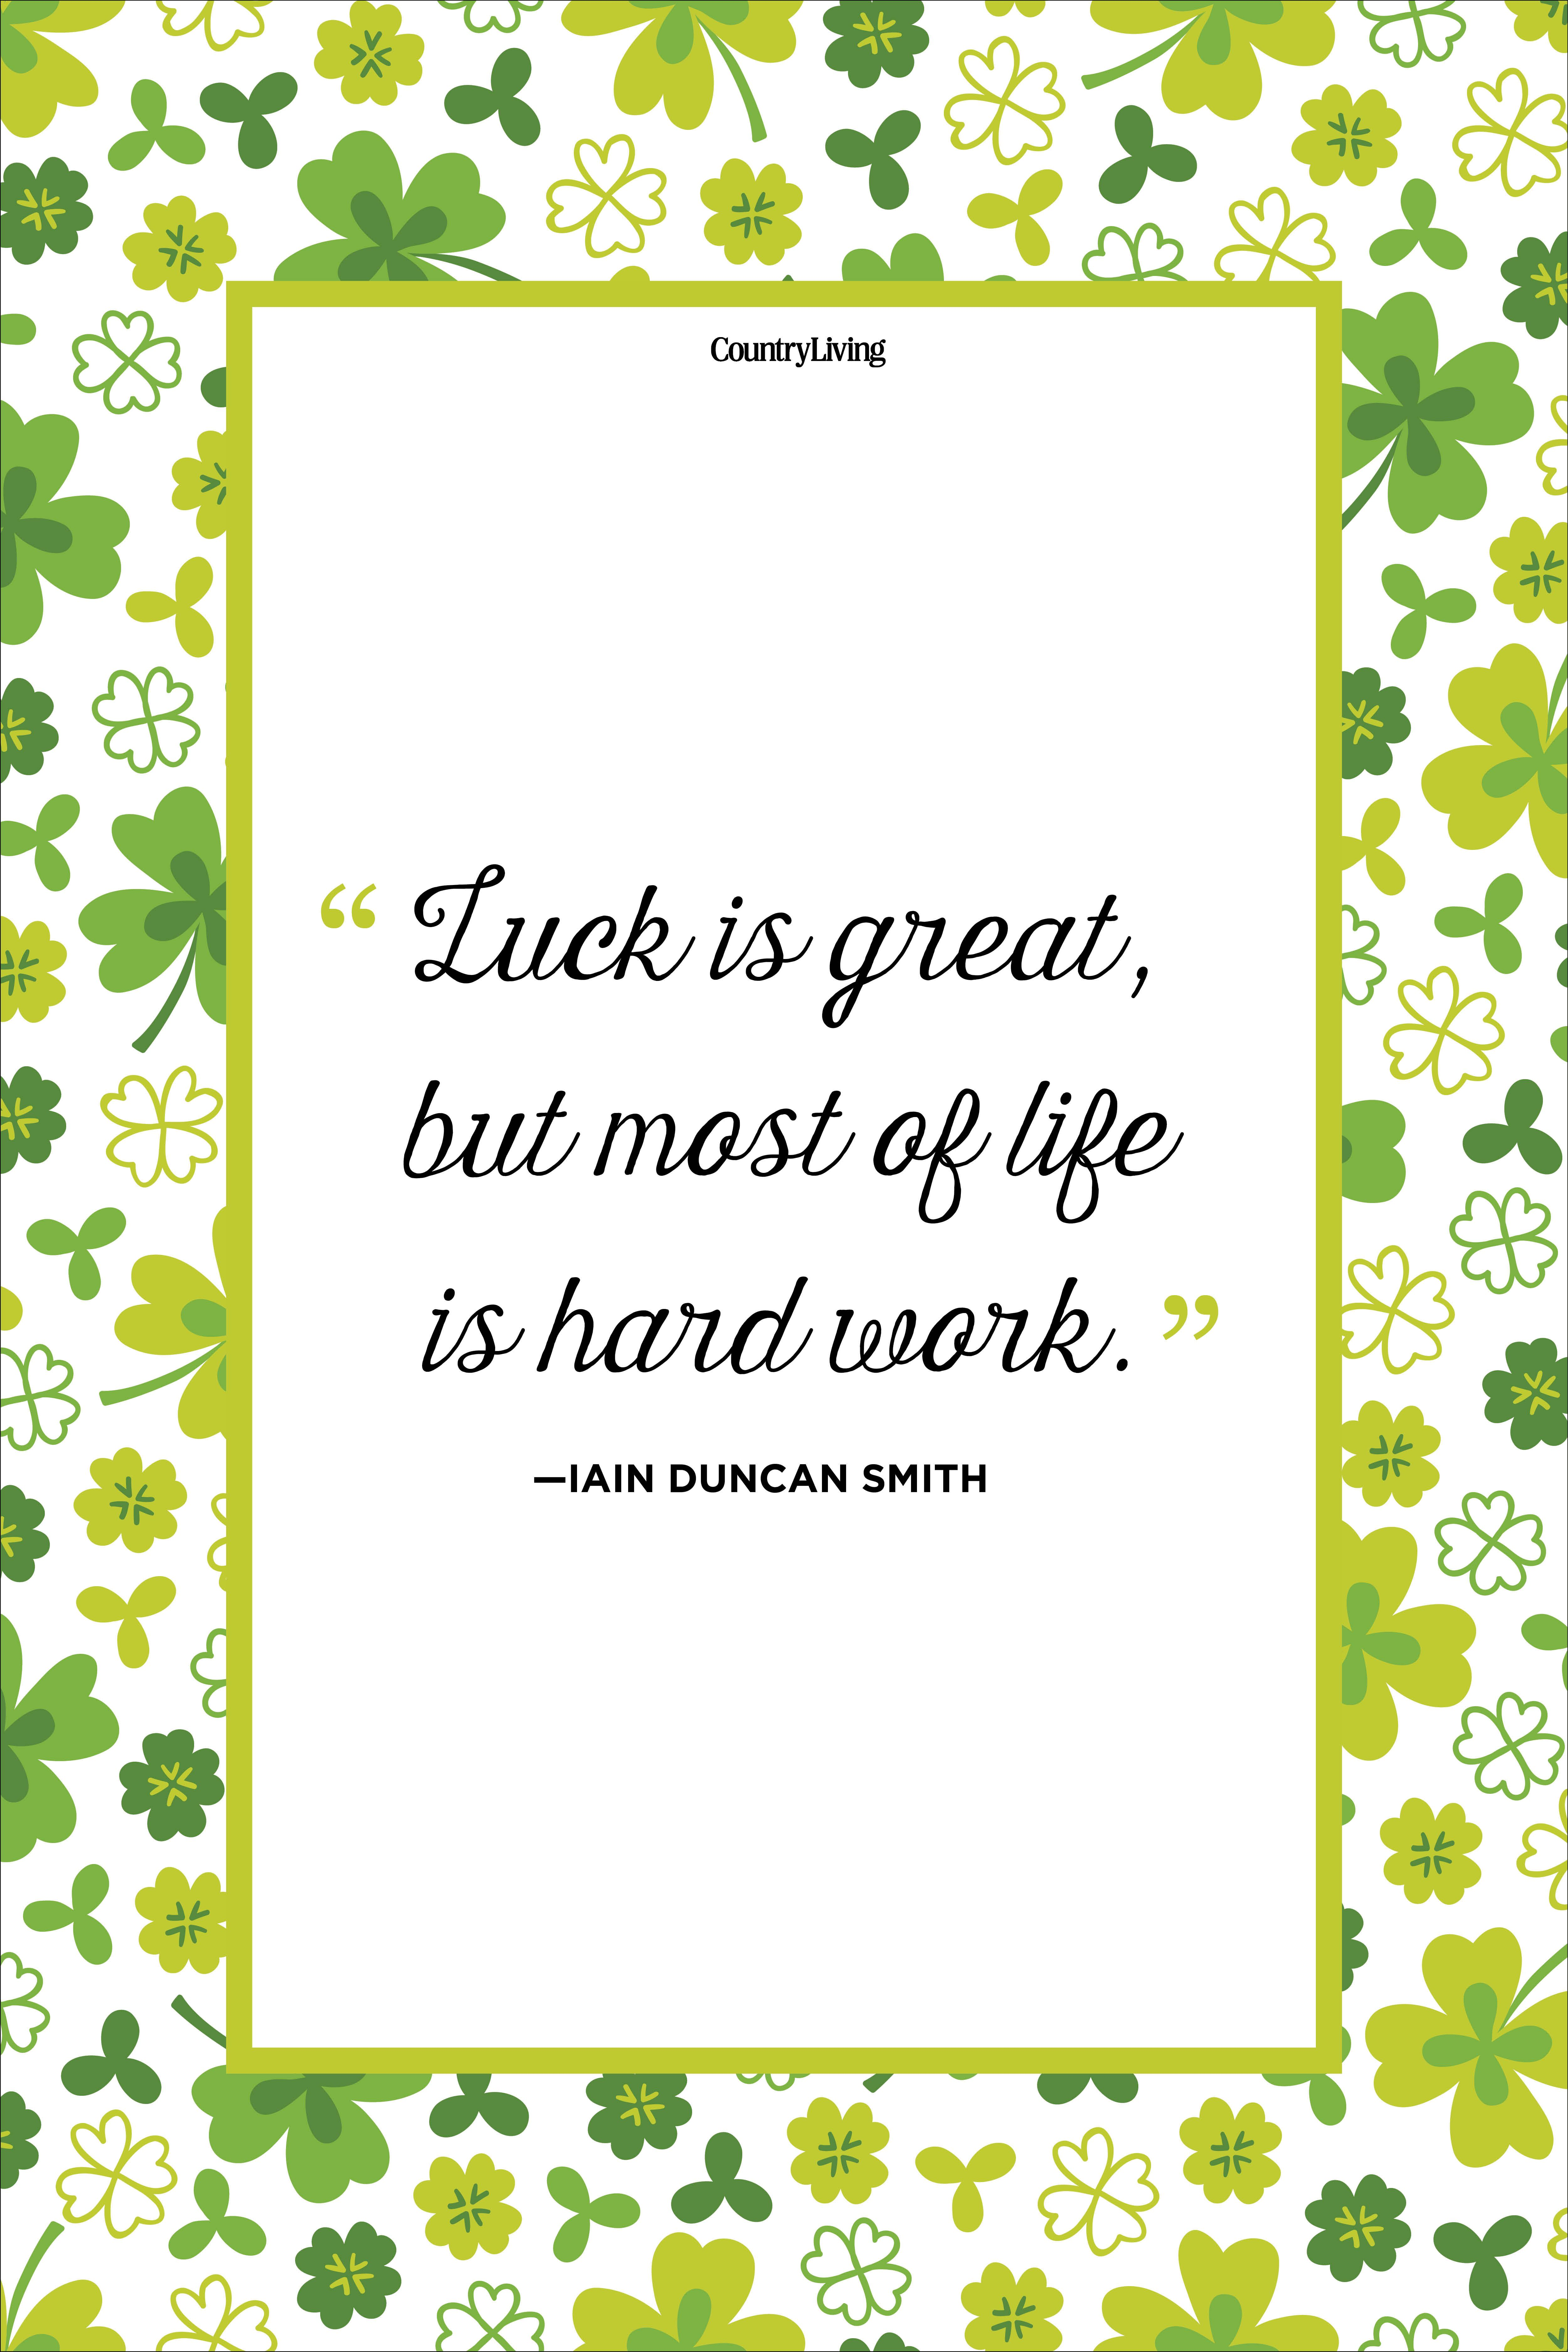 18 St. Patrick\'s Day Quotes - Best Irish Sayings for St. Paddy\'s Day